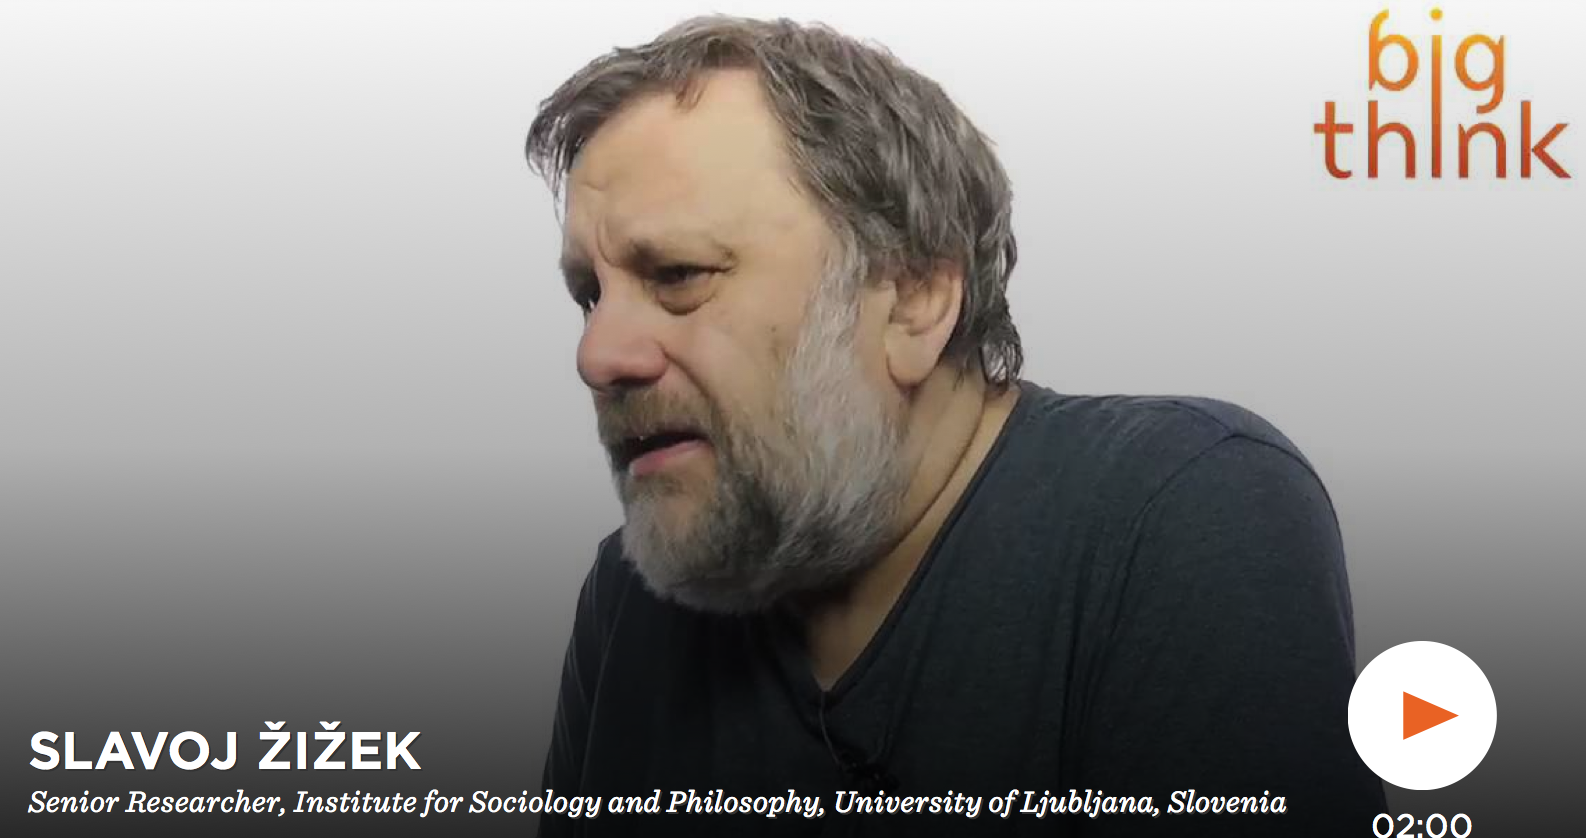 Zizek on Big Think